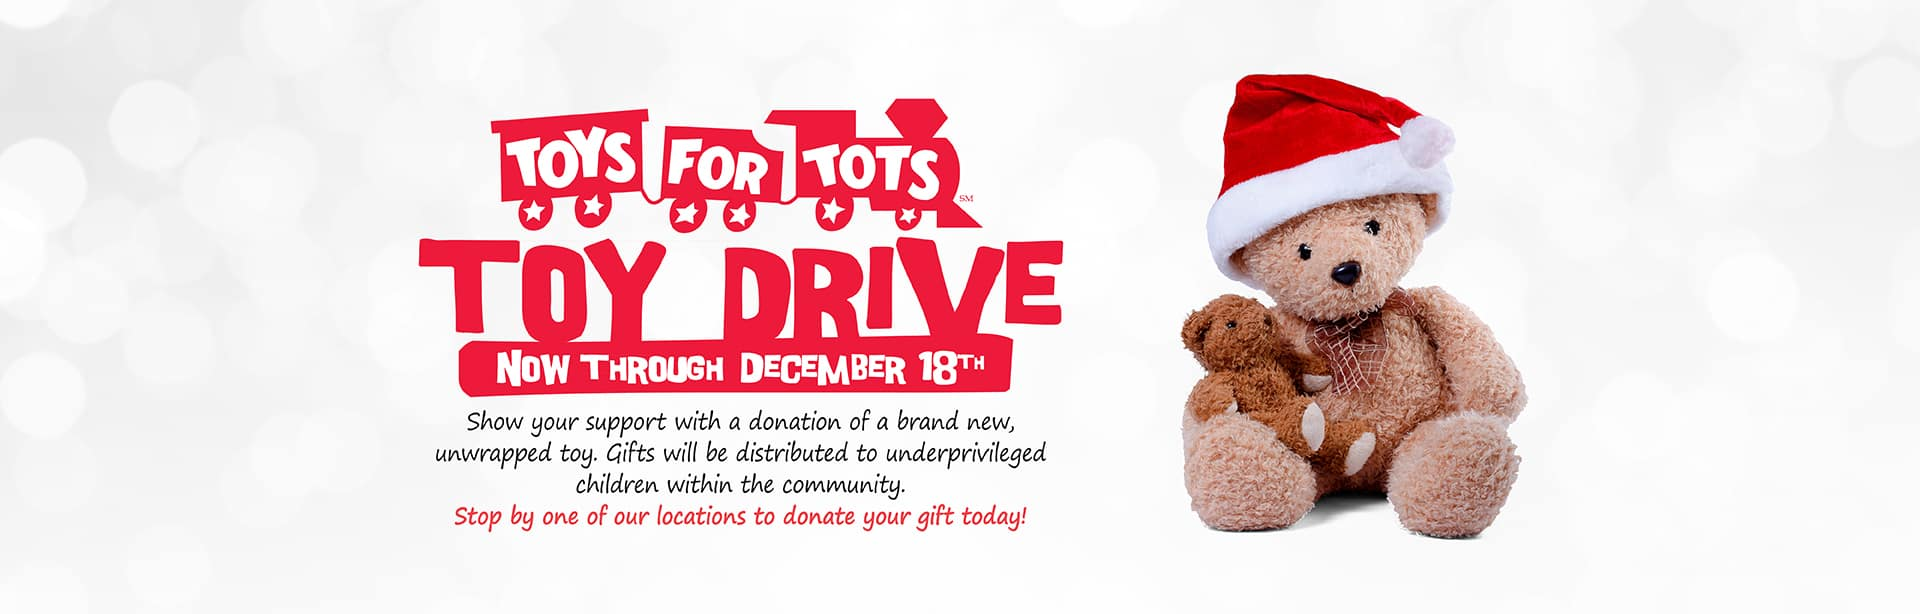 Toy Drive - Toy for Tots